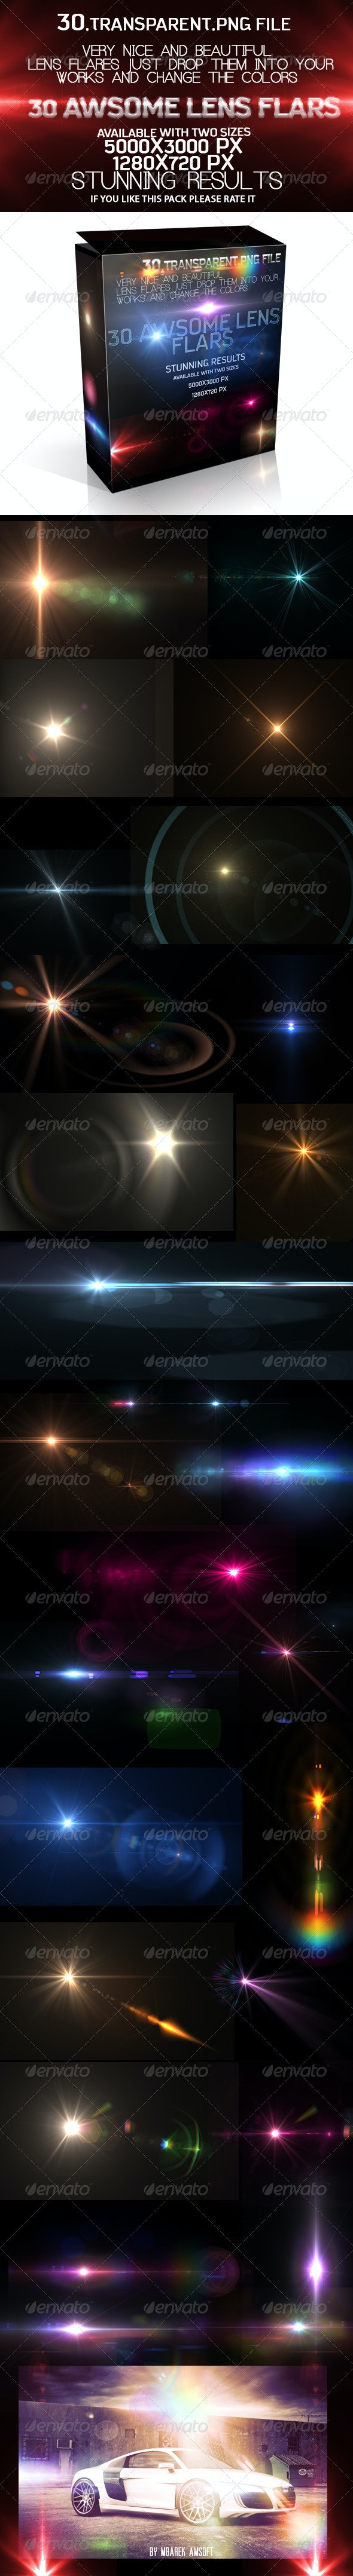 30 Awsome Lens Flare - Abstract Backgrounds